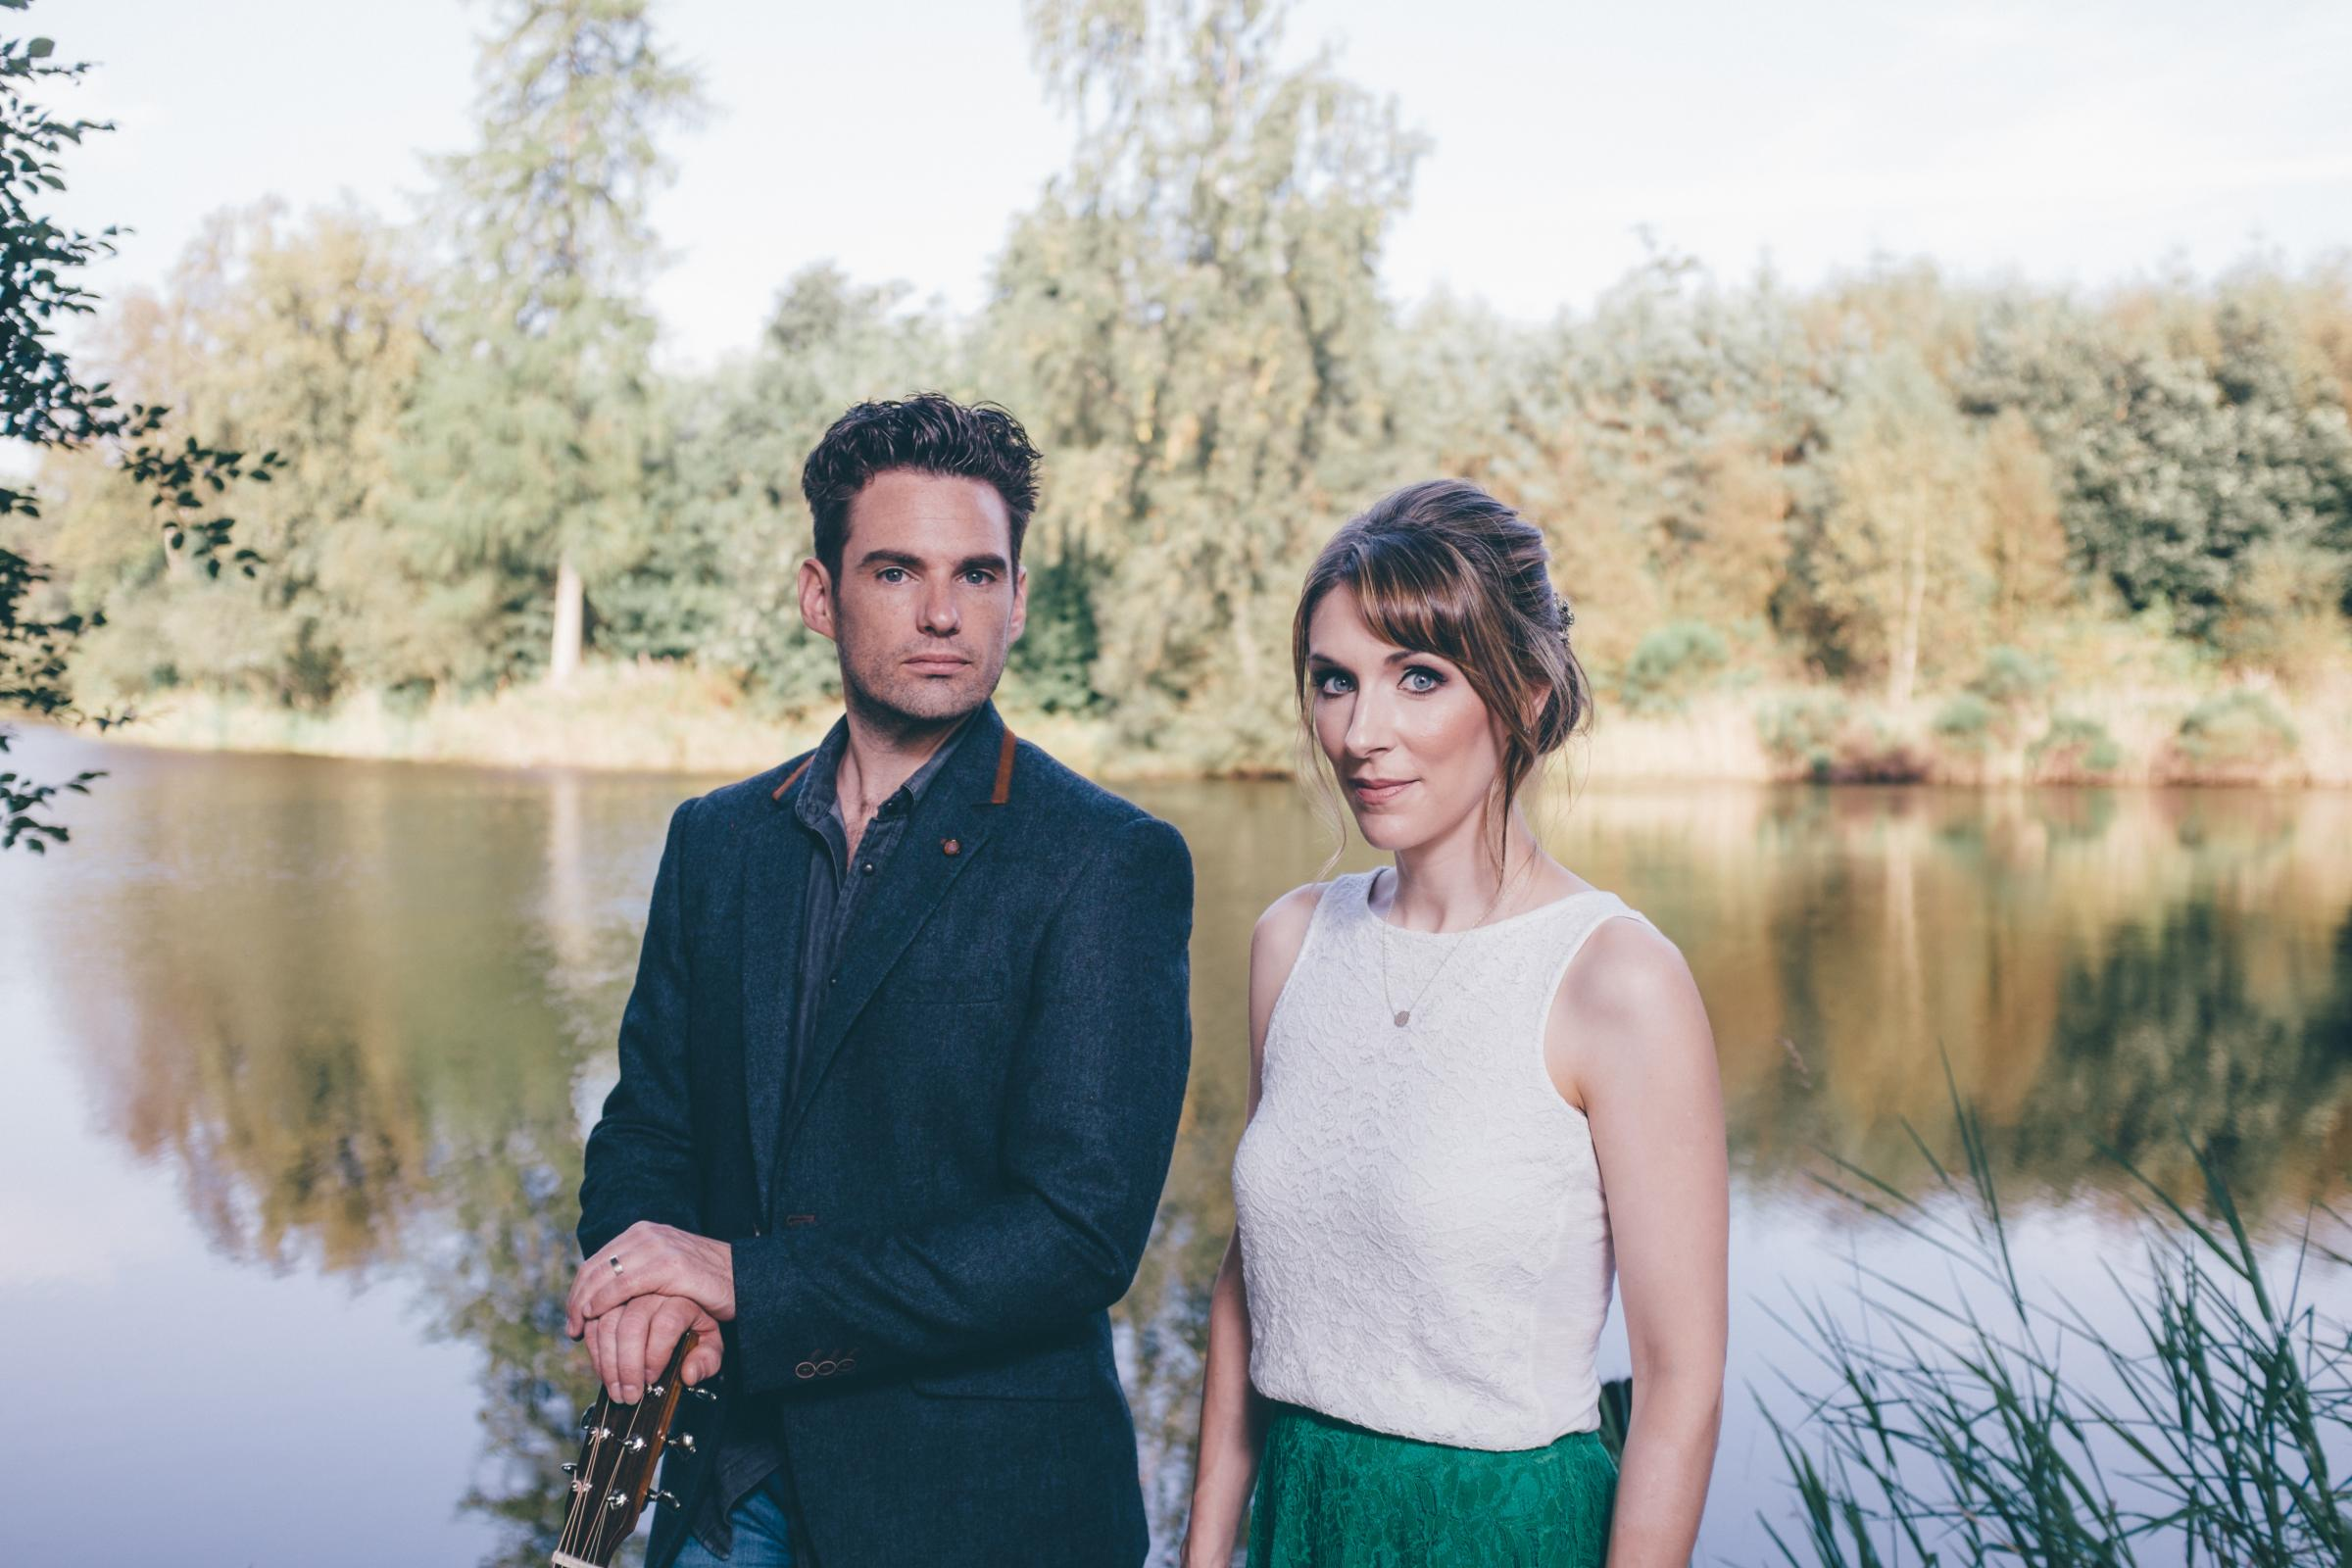 Emily Smith and Jamie McClennan will perform at the Barnoldswick Music and Arts Centre